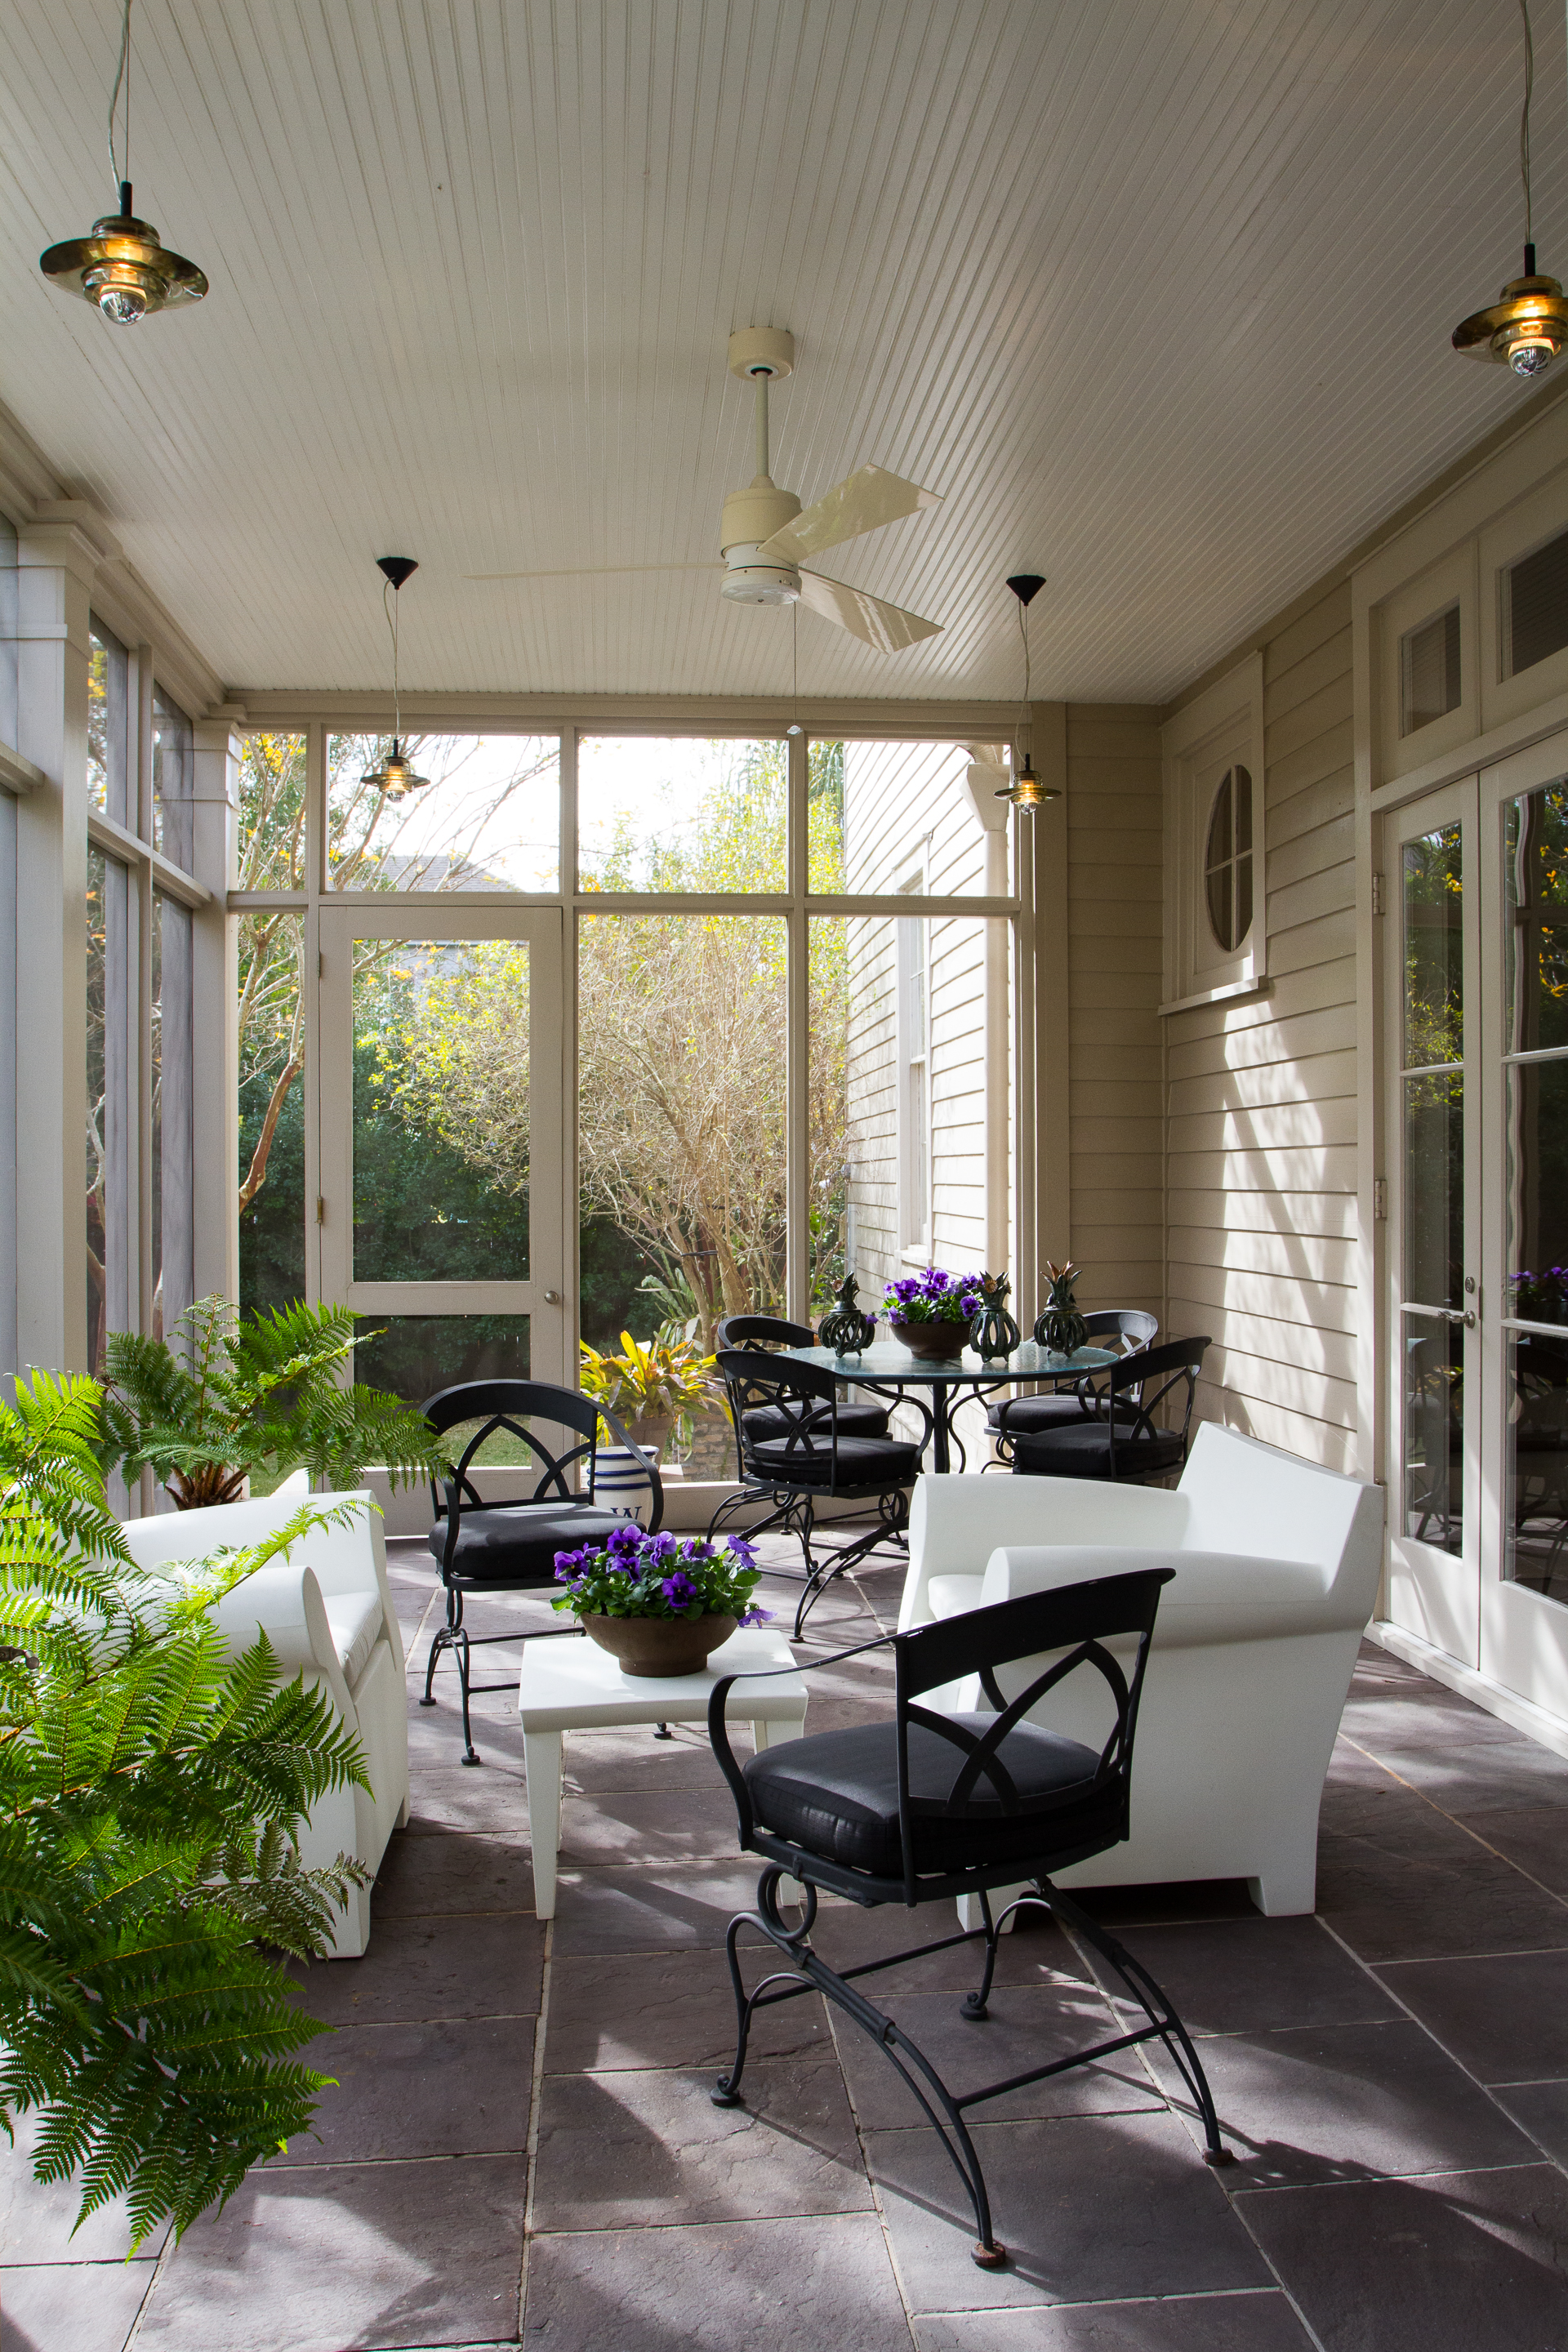 AtlantaSt_InteriorPorch_20131202_DebraW_025 copy.jpg